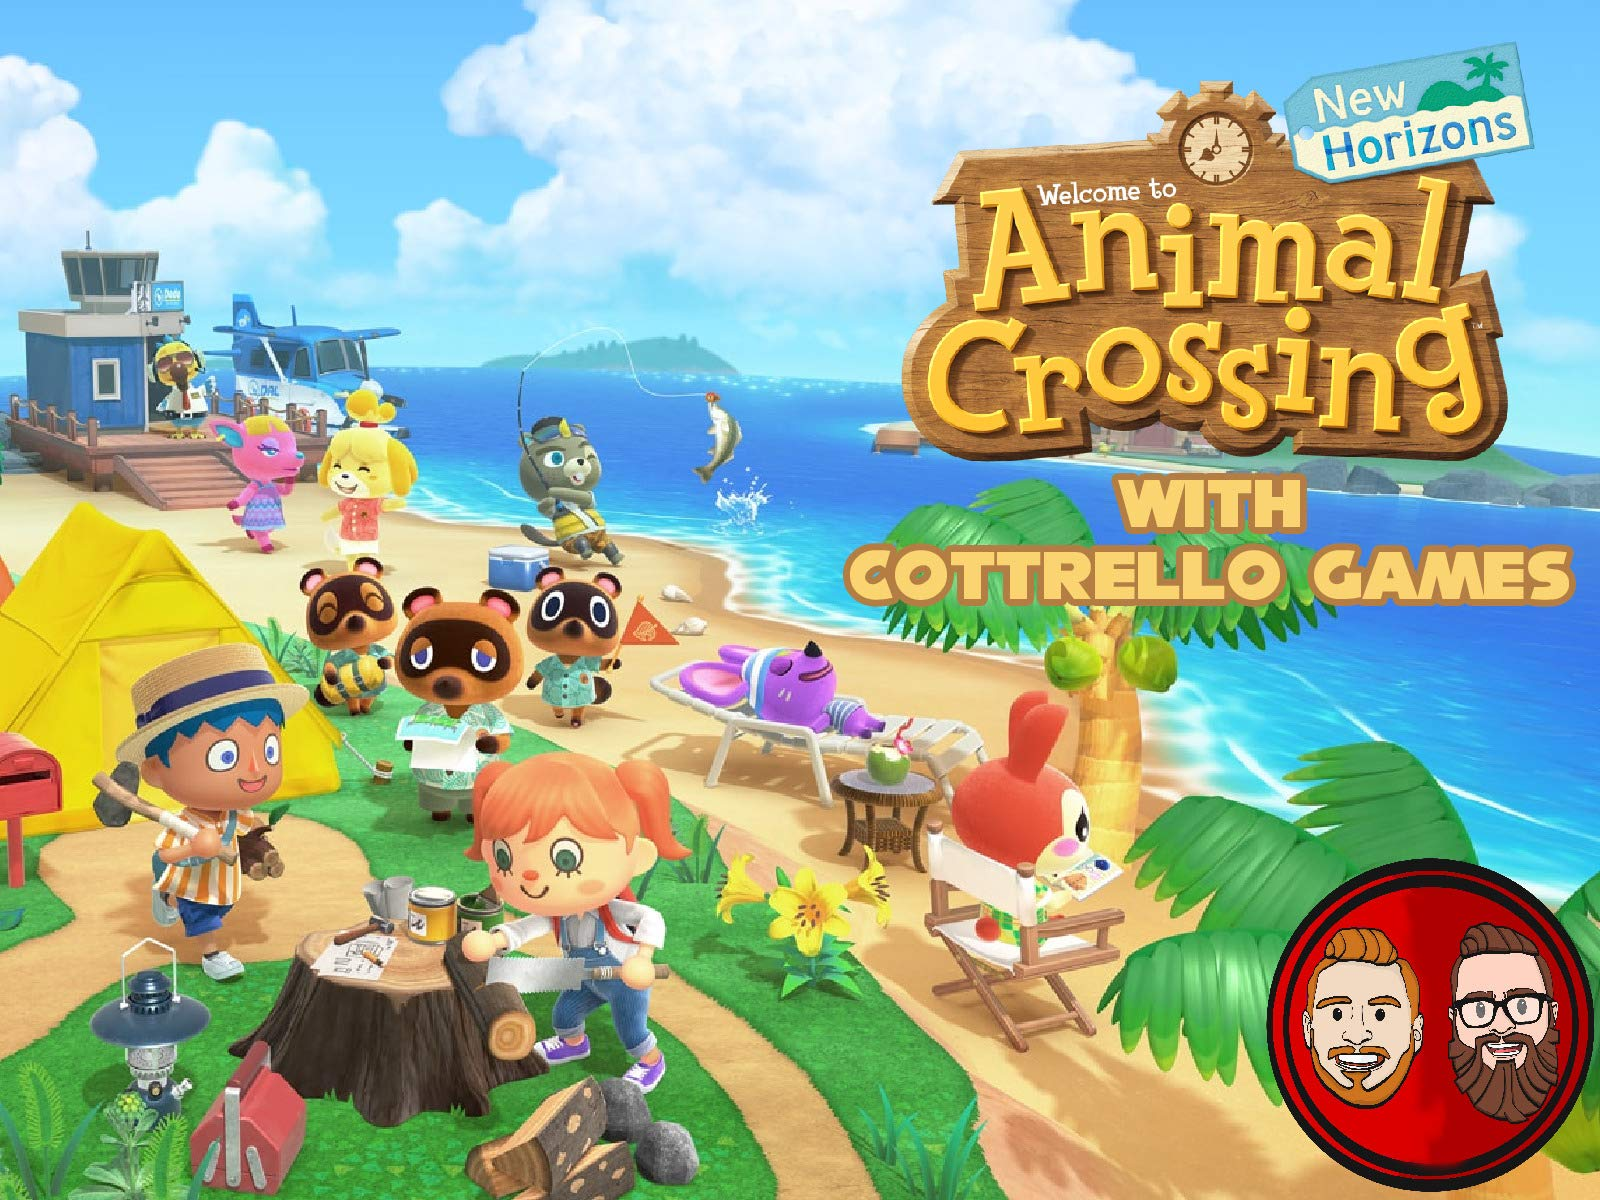 Animal Crossing New Horizons with Cottrello Games